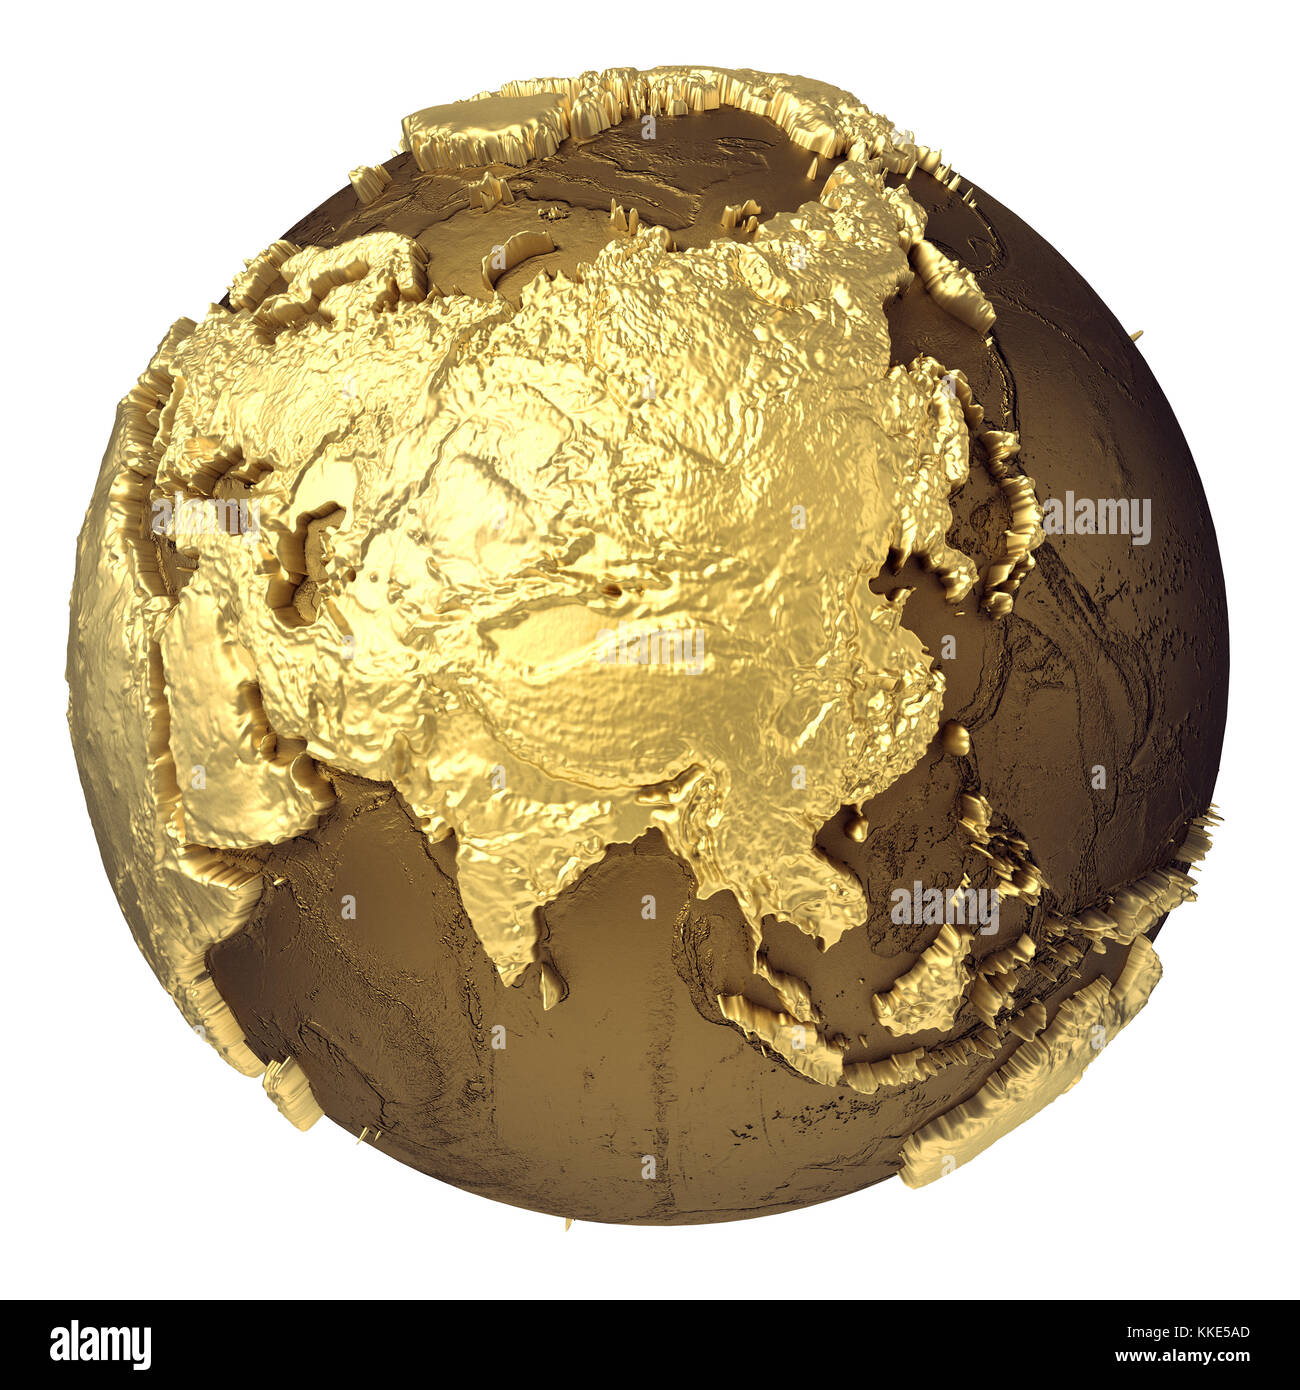 Golden globe model without water asia 3d rendering isolated on golden globe model without water asia 3d rendering isolated on white background elements of this image furnished by nasa publicscrutiny Choice Image